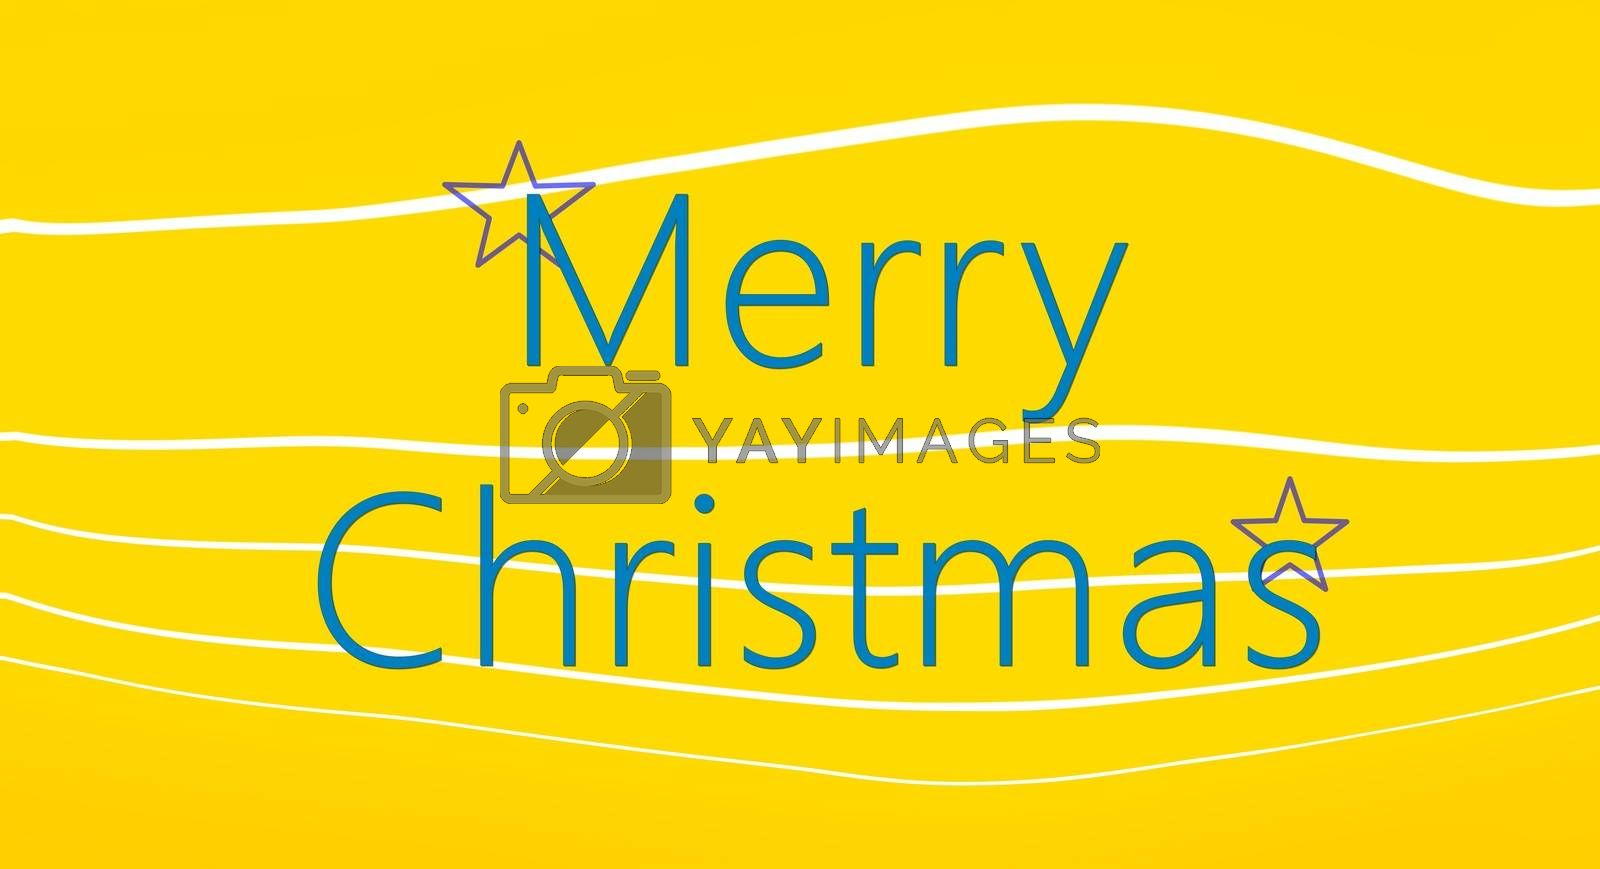 picture of a Merry Christmas card on yellow background with white lines